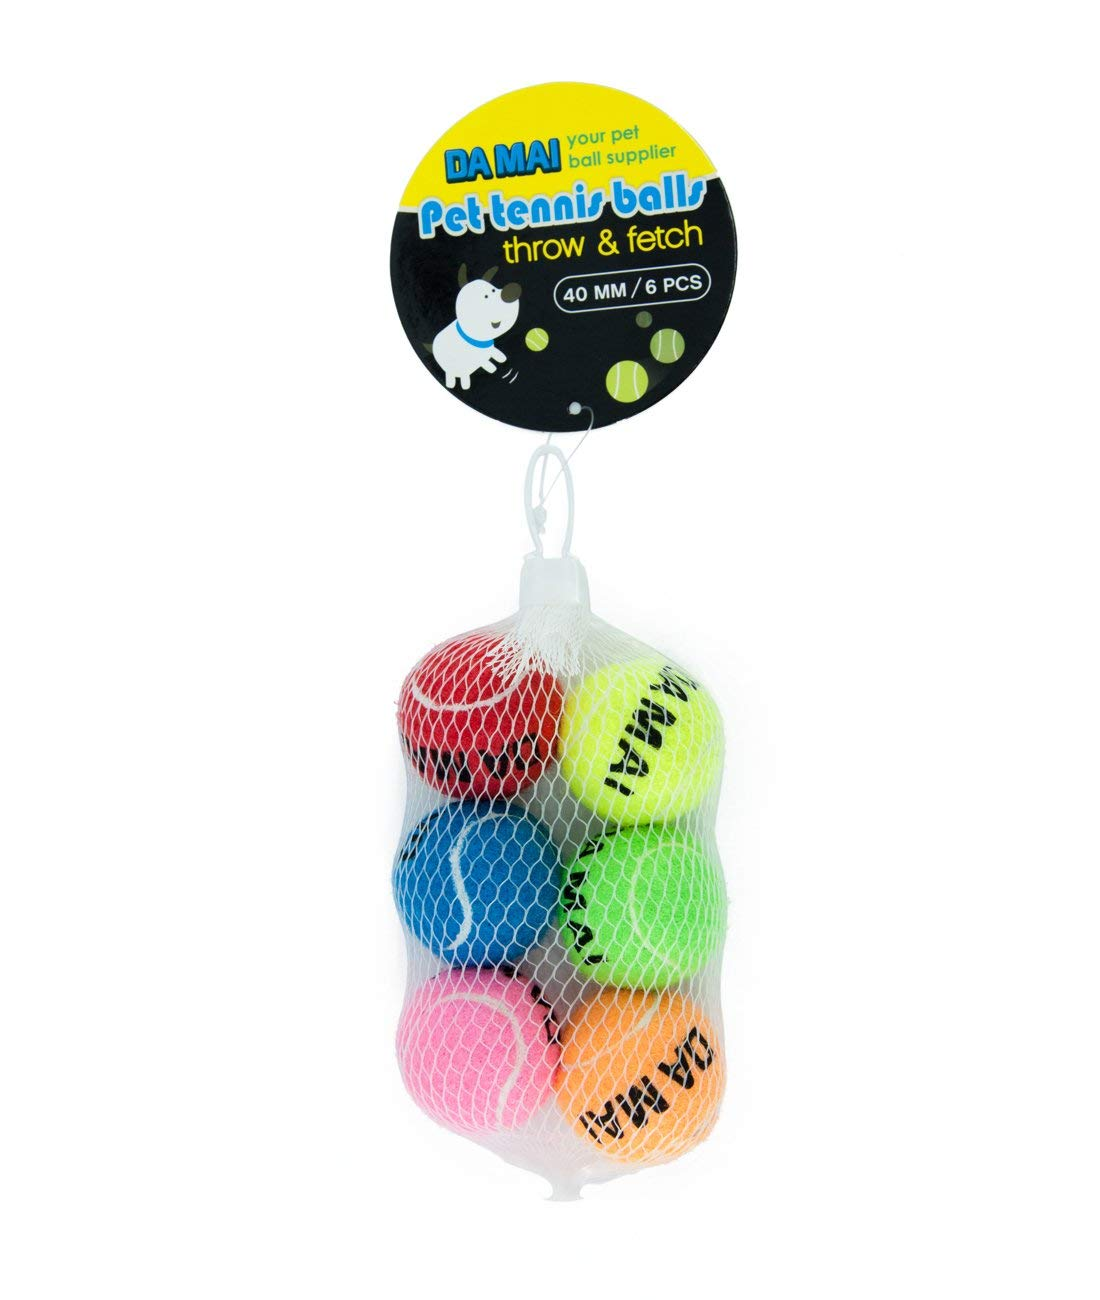 Da Mai 40mm mini Tennis Ball for Sports and Pet Toys Dogs Outdoor Sports Cricket